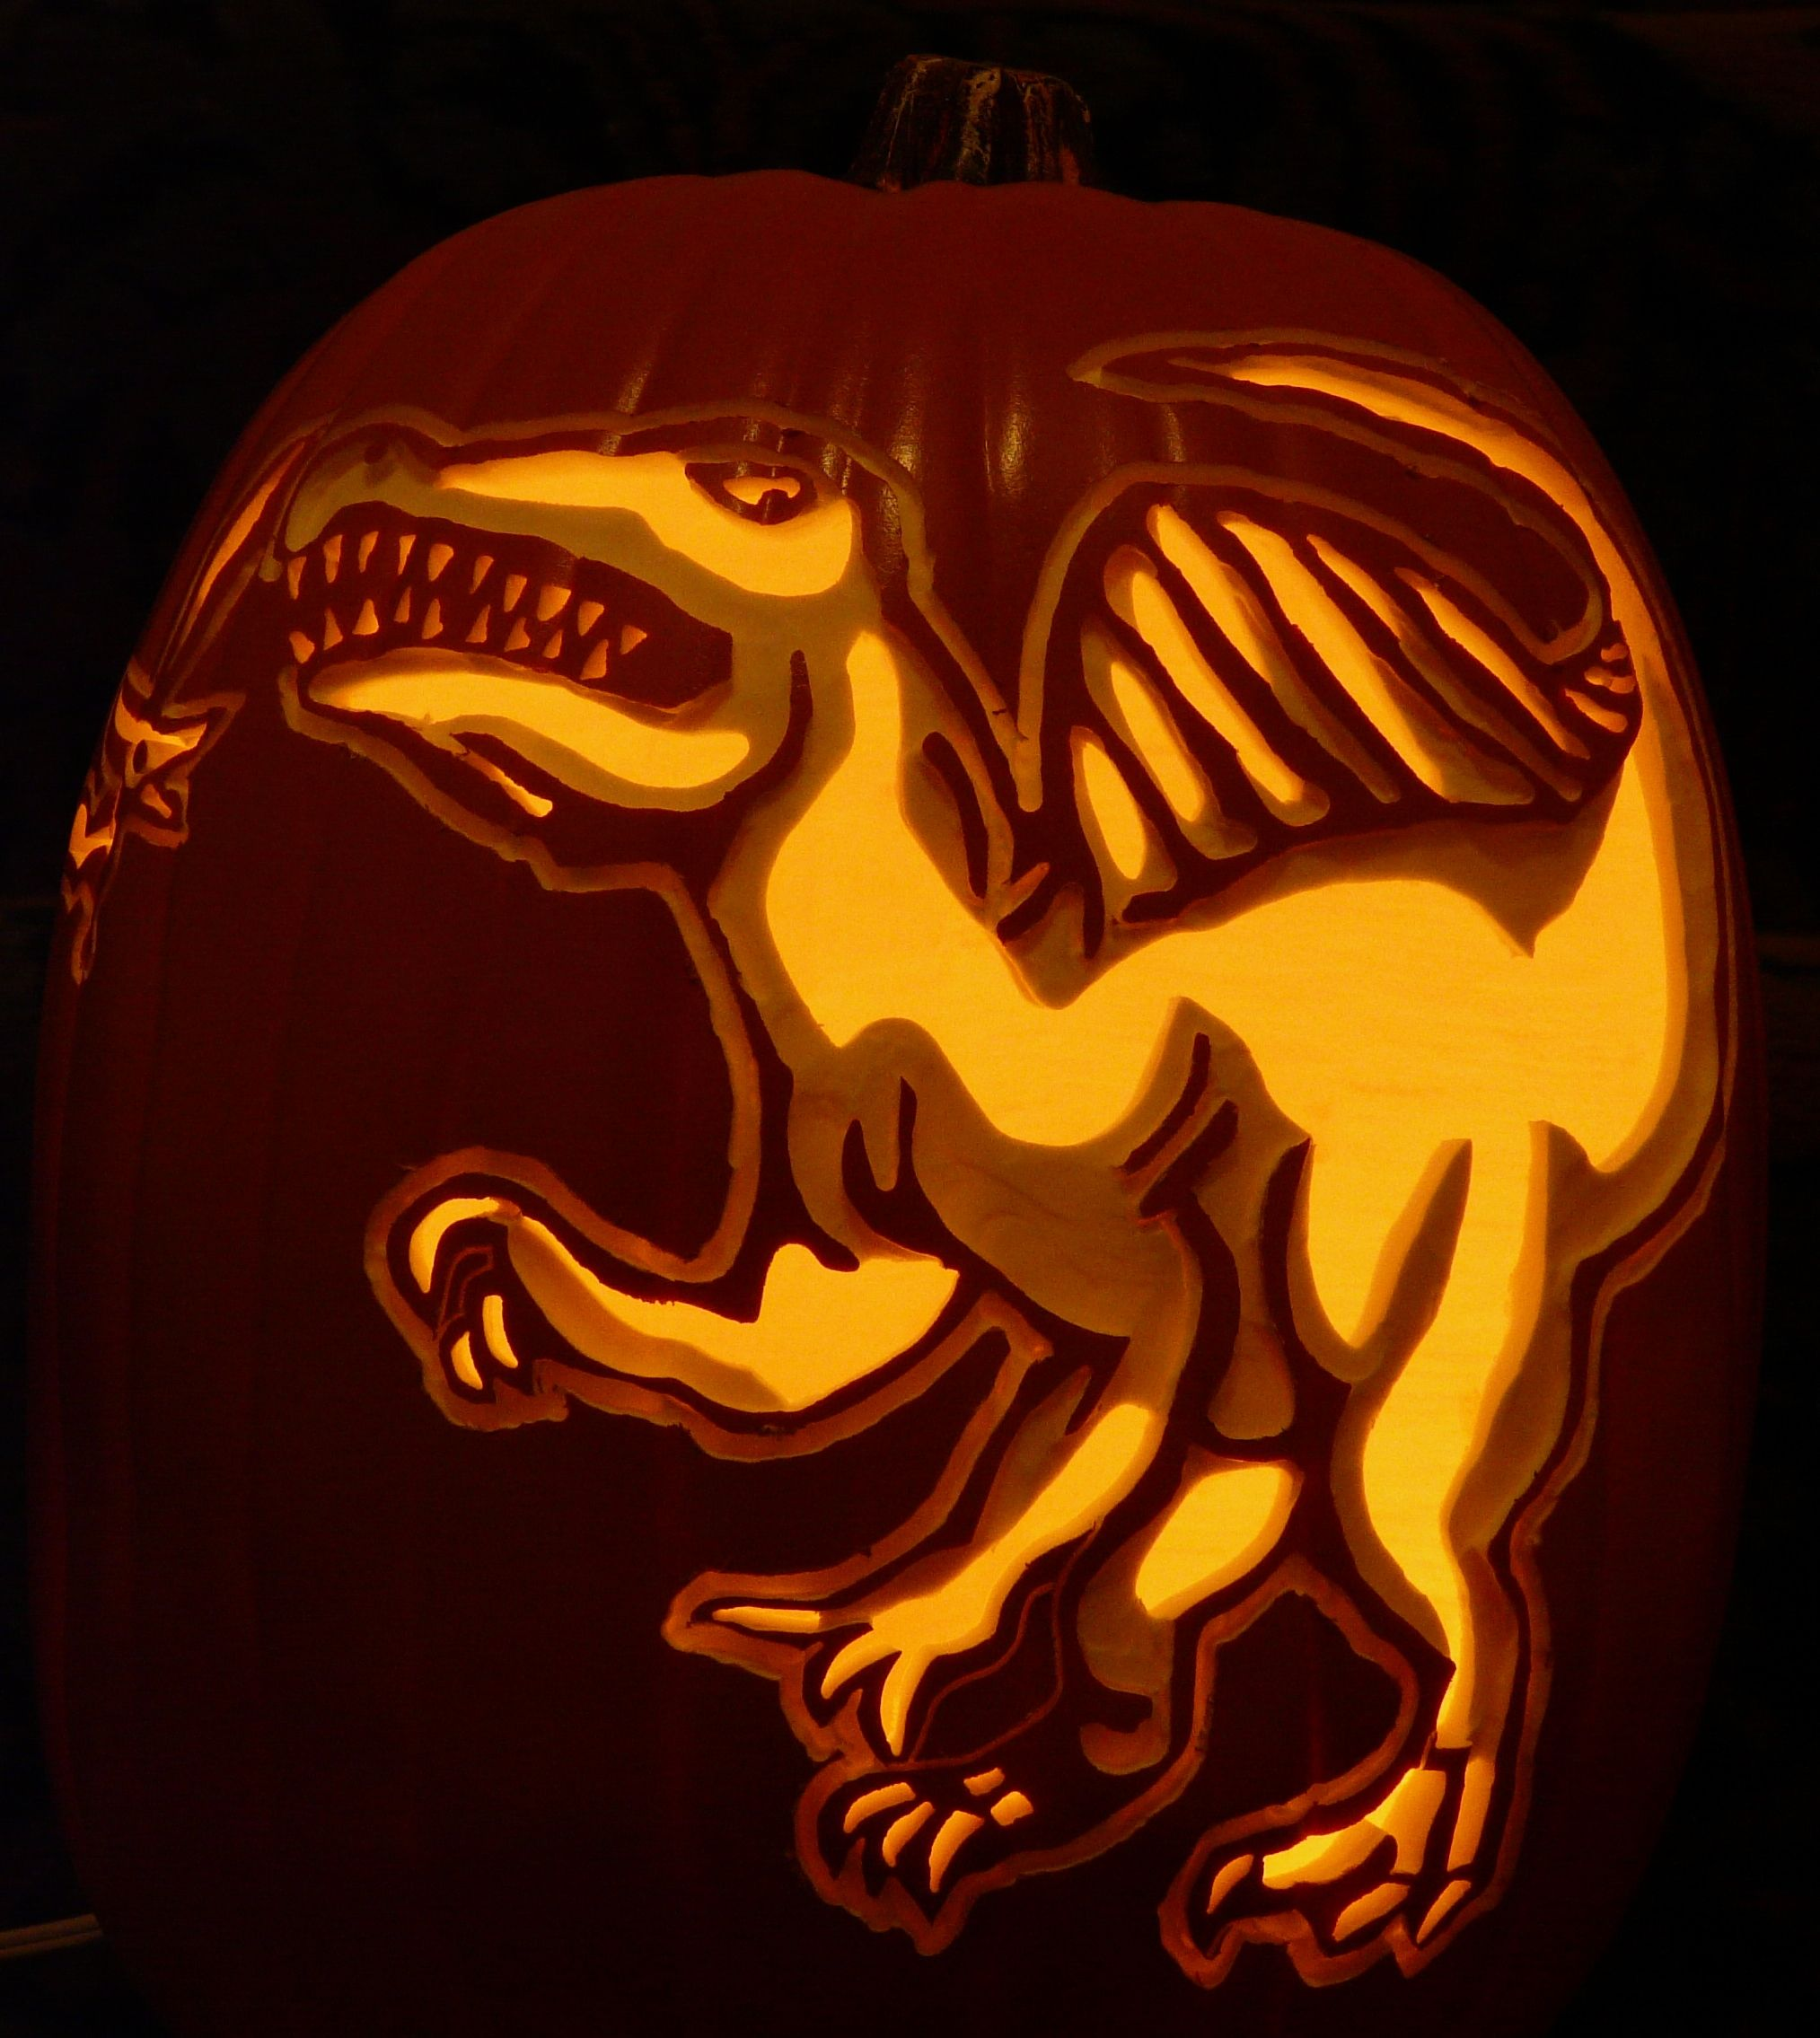 my 3 year old grandson wanted a spinosaurus pumpkin so i carved